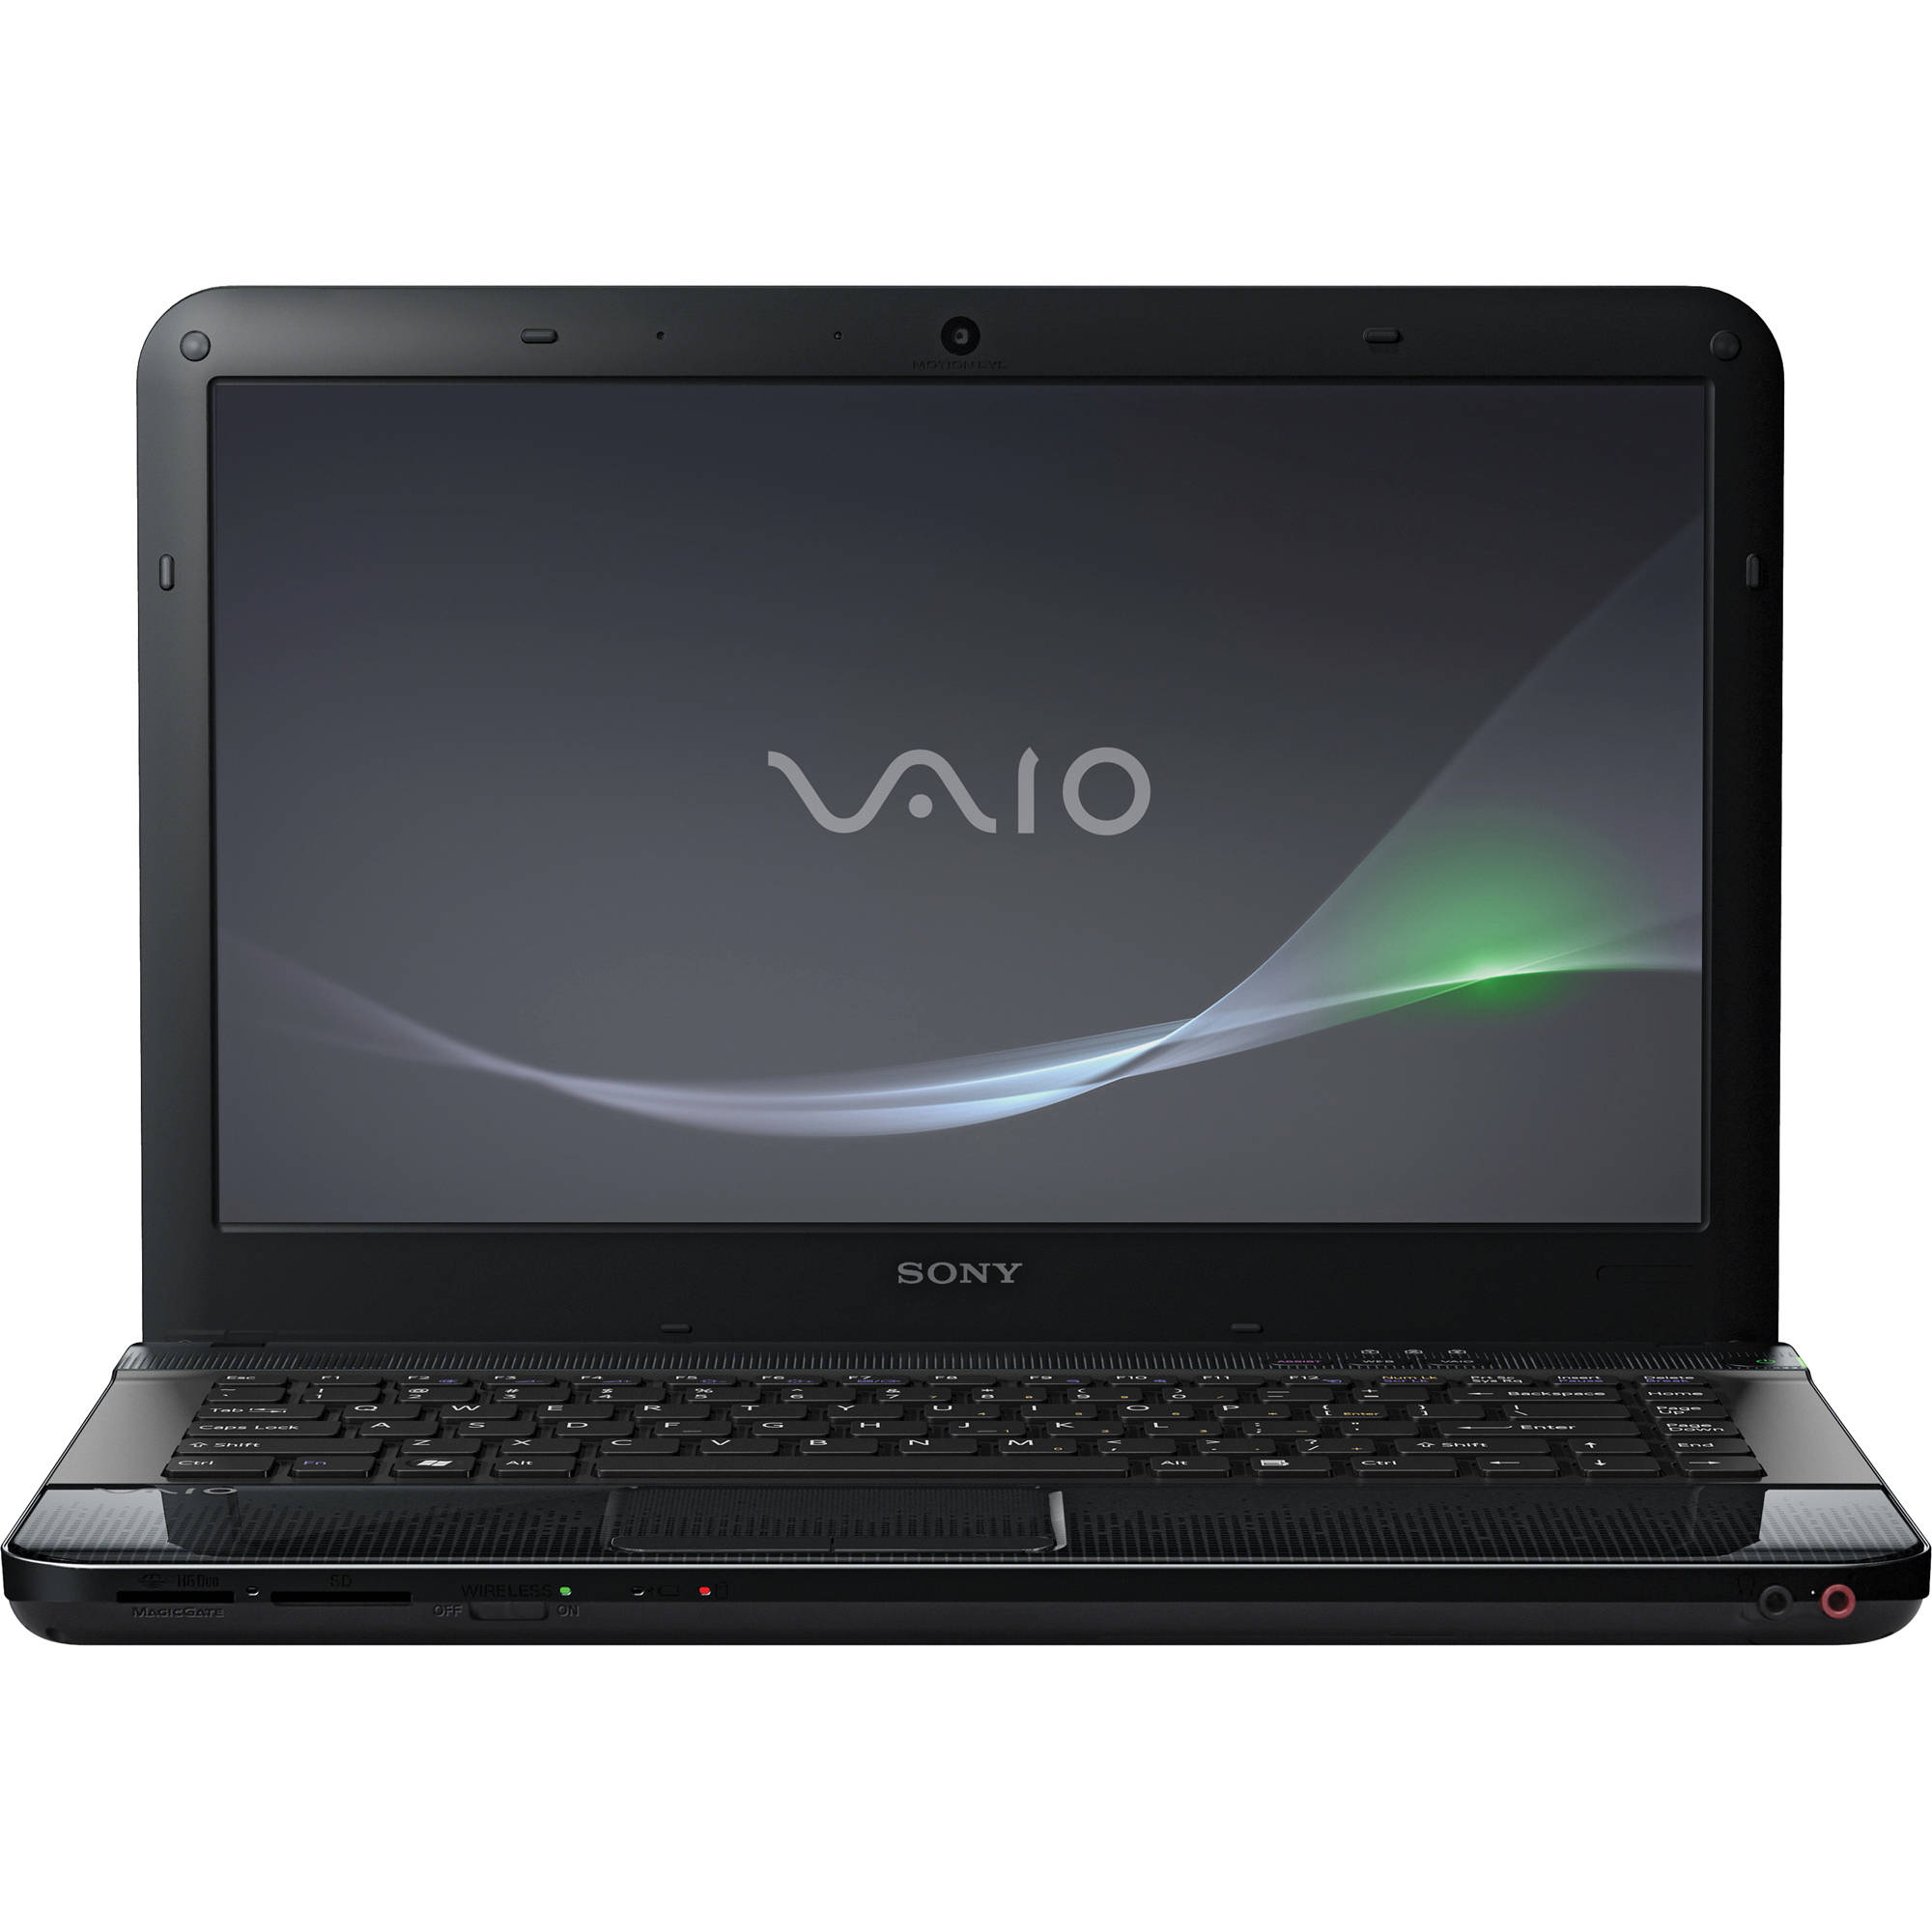 Sony Vaio VPCEL22FX Shared Library Linux